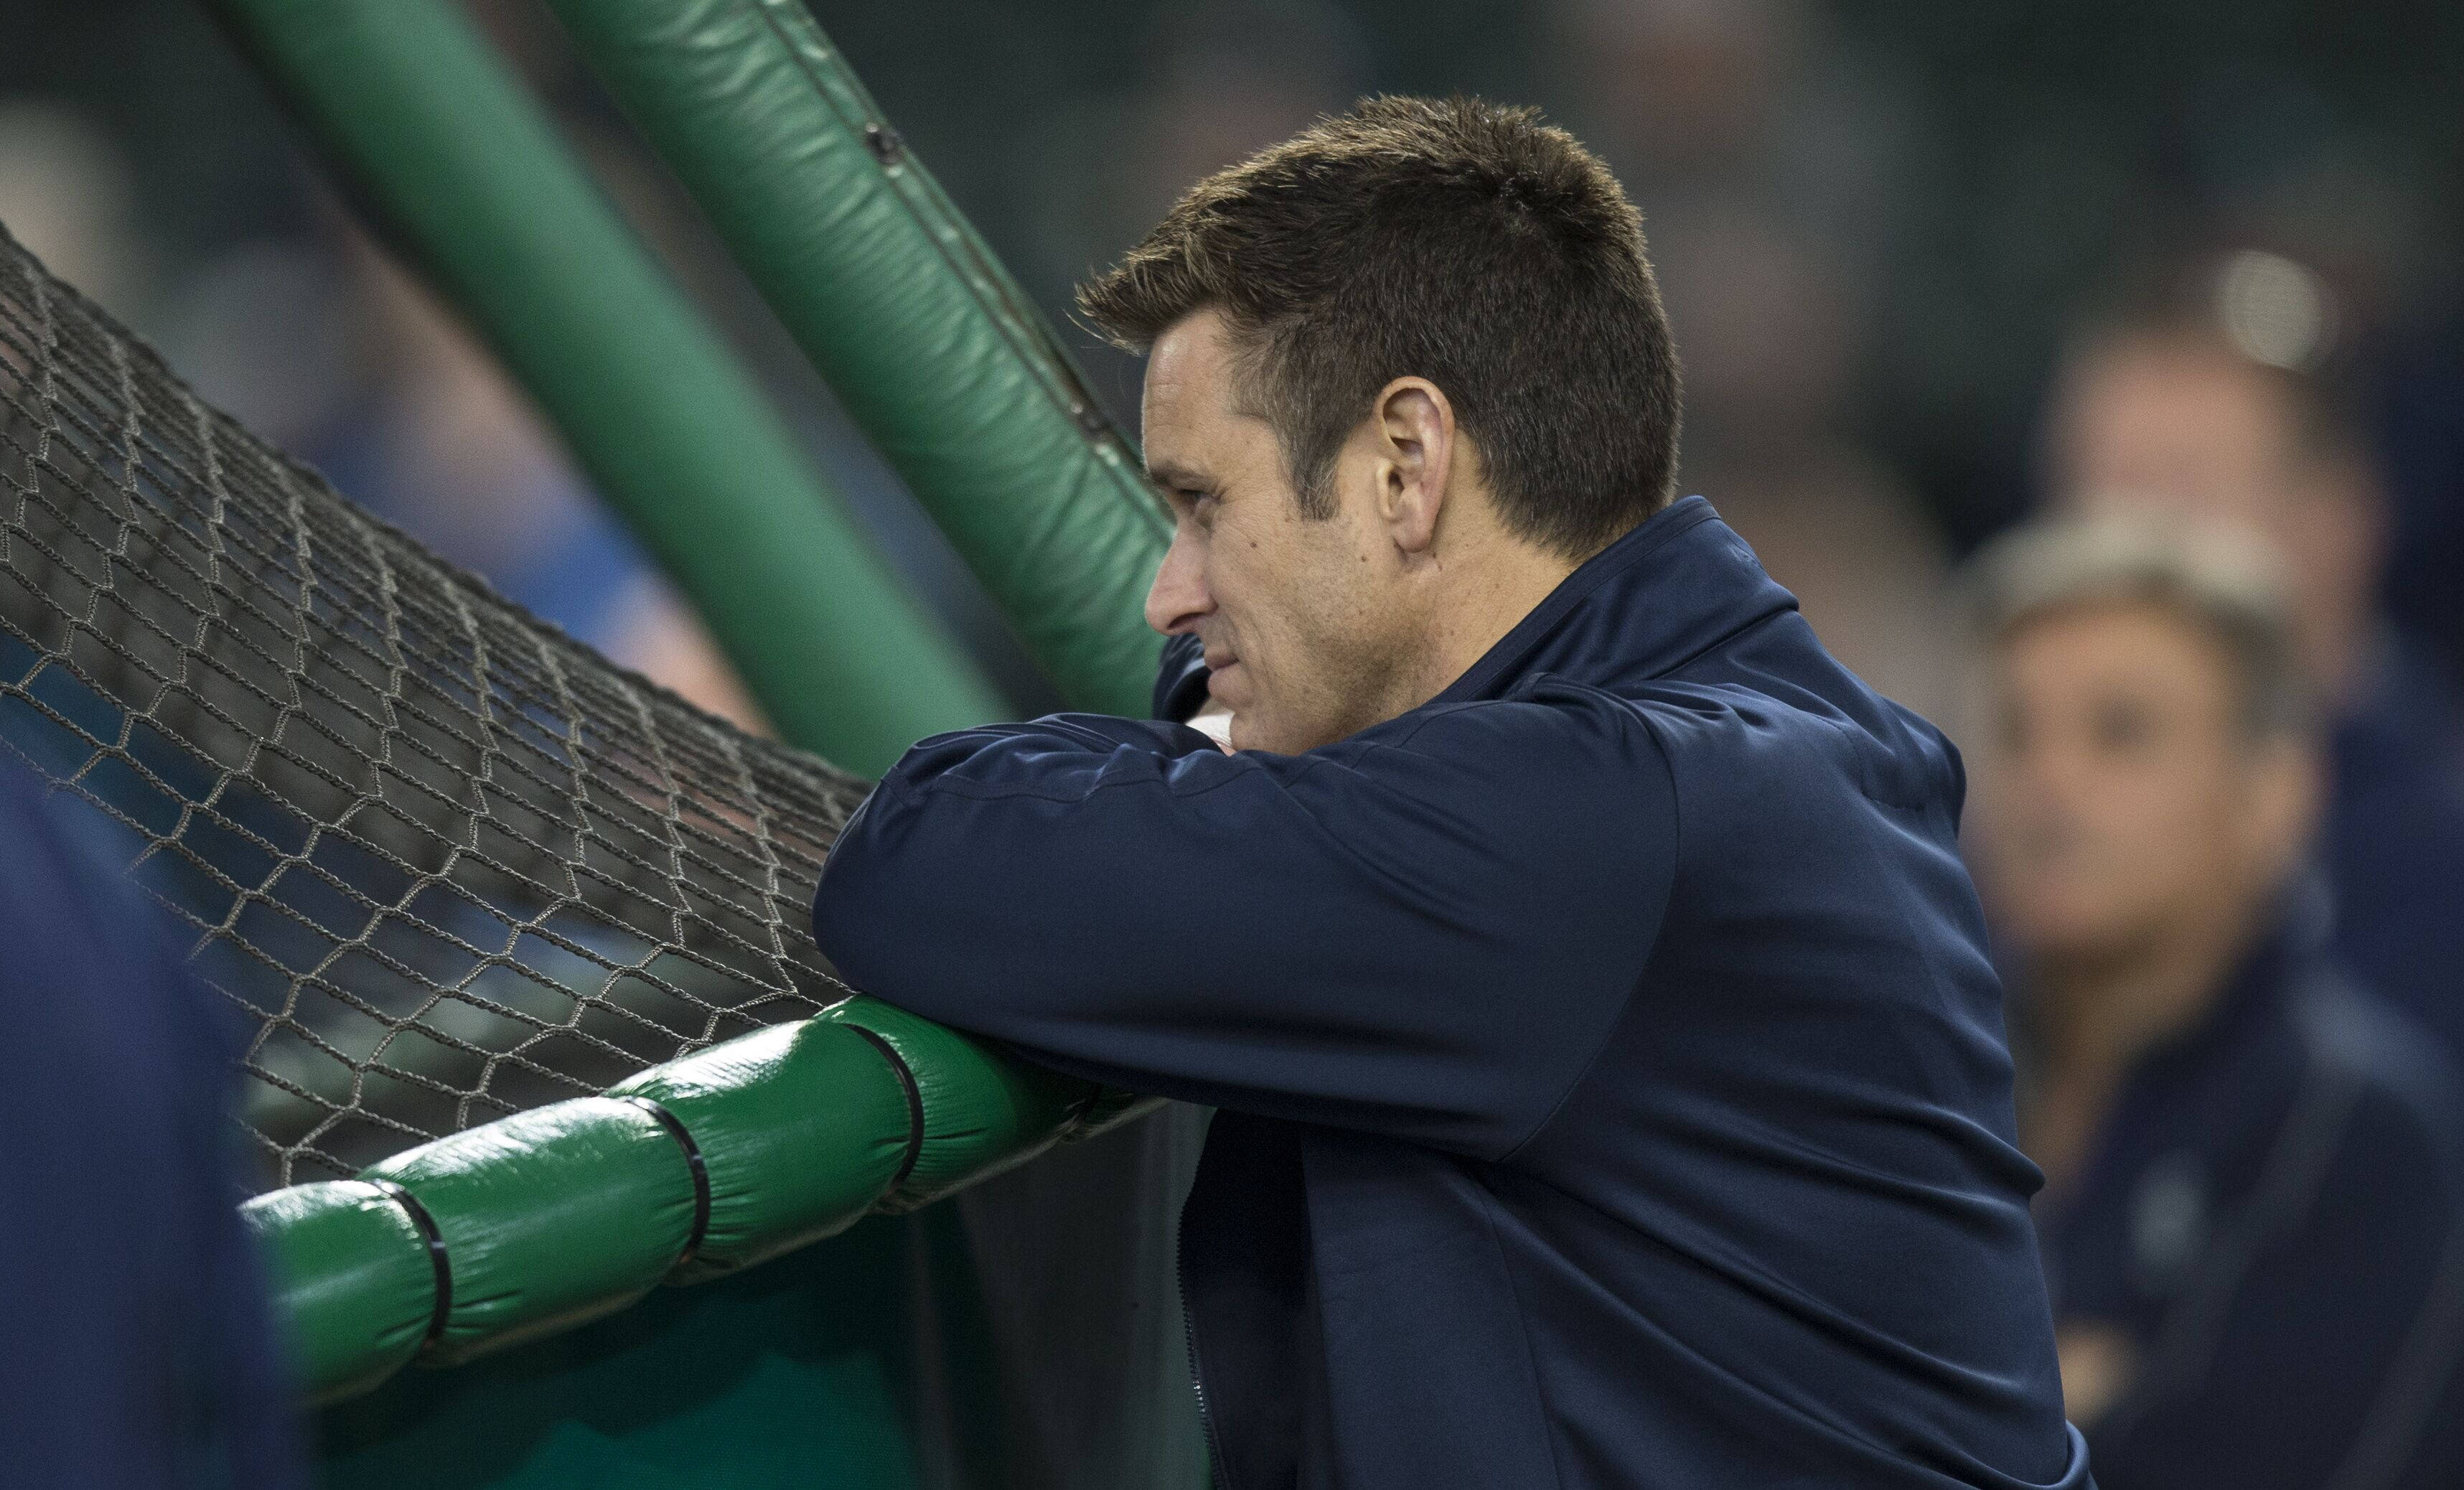 Seattle Mariners Off-Season Contract Primer: Where Everybody Stands